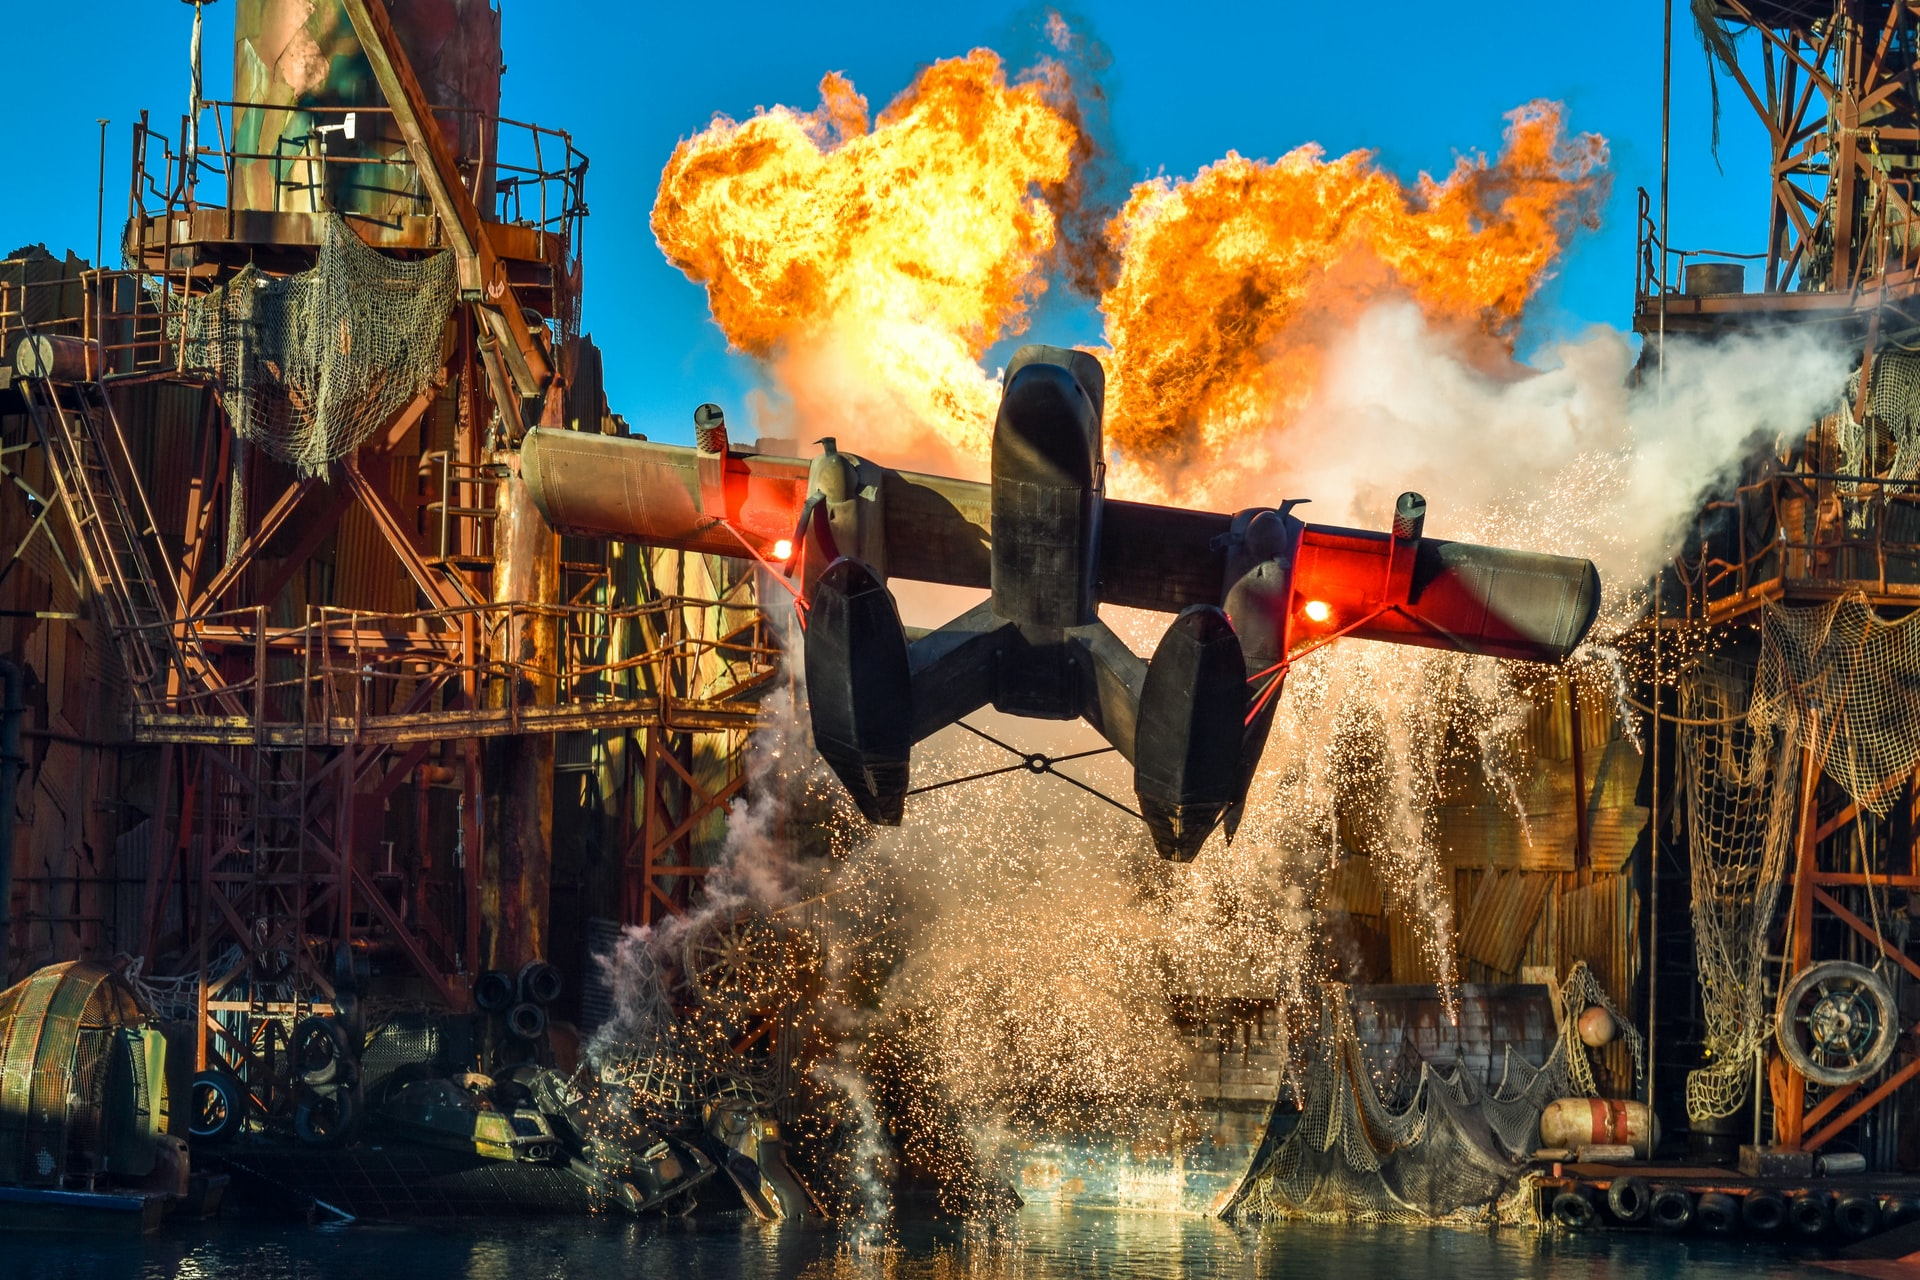 Show with an airplane, fire and other special effects at Universal Studios Hollywood